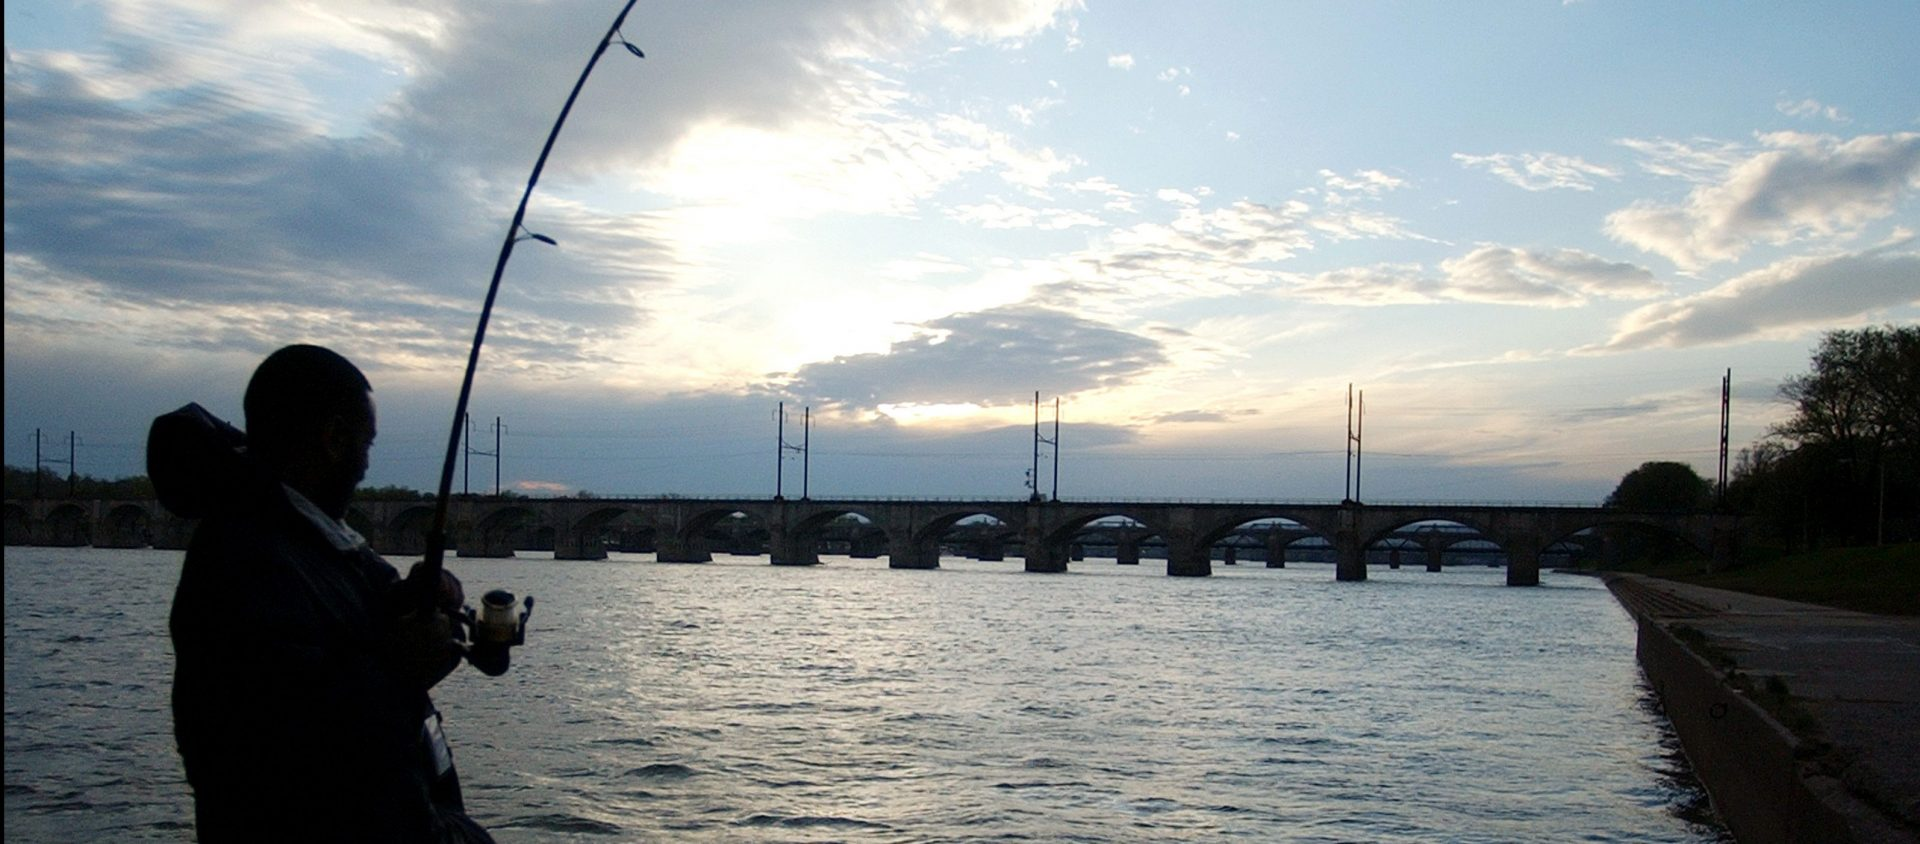 Report: Pennsylvania falls behind in Chesapeake Bay cleanup | WITF